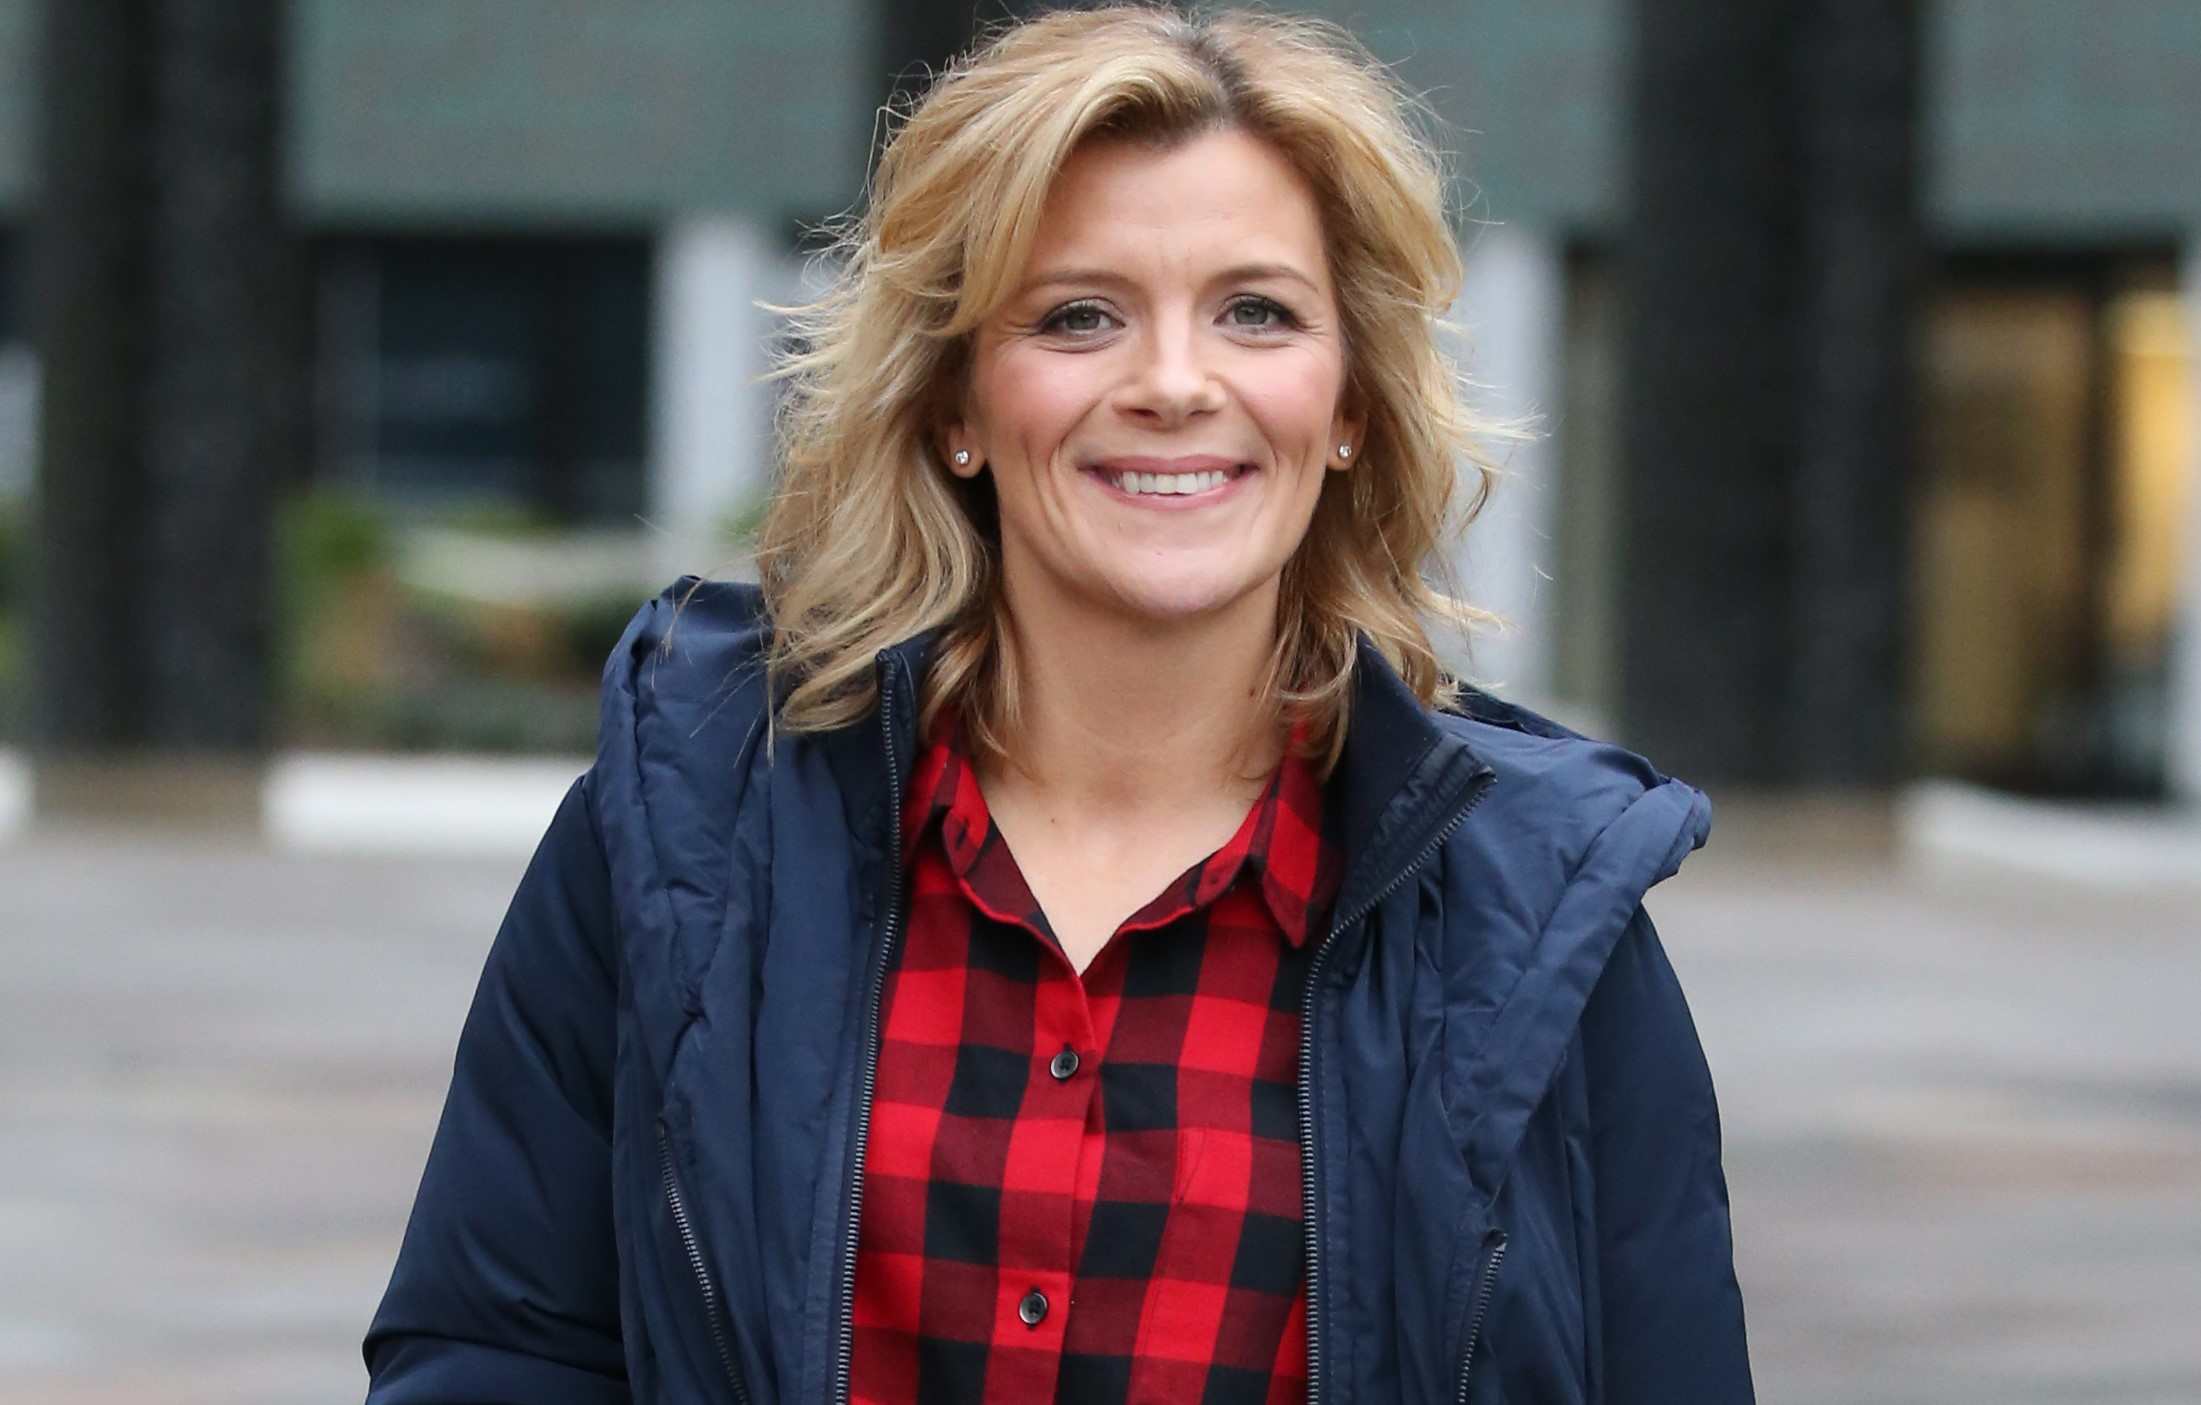 Coronation Street's Jane Danson shares throwback snap to celebrate 20 years with her husband